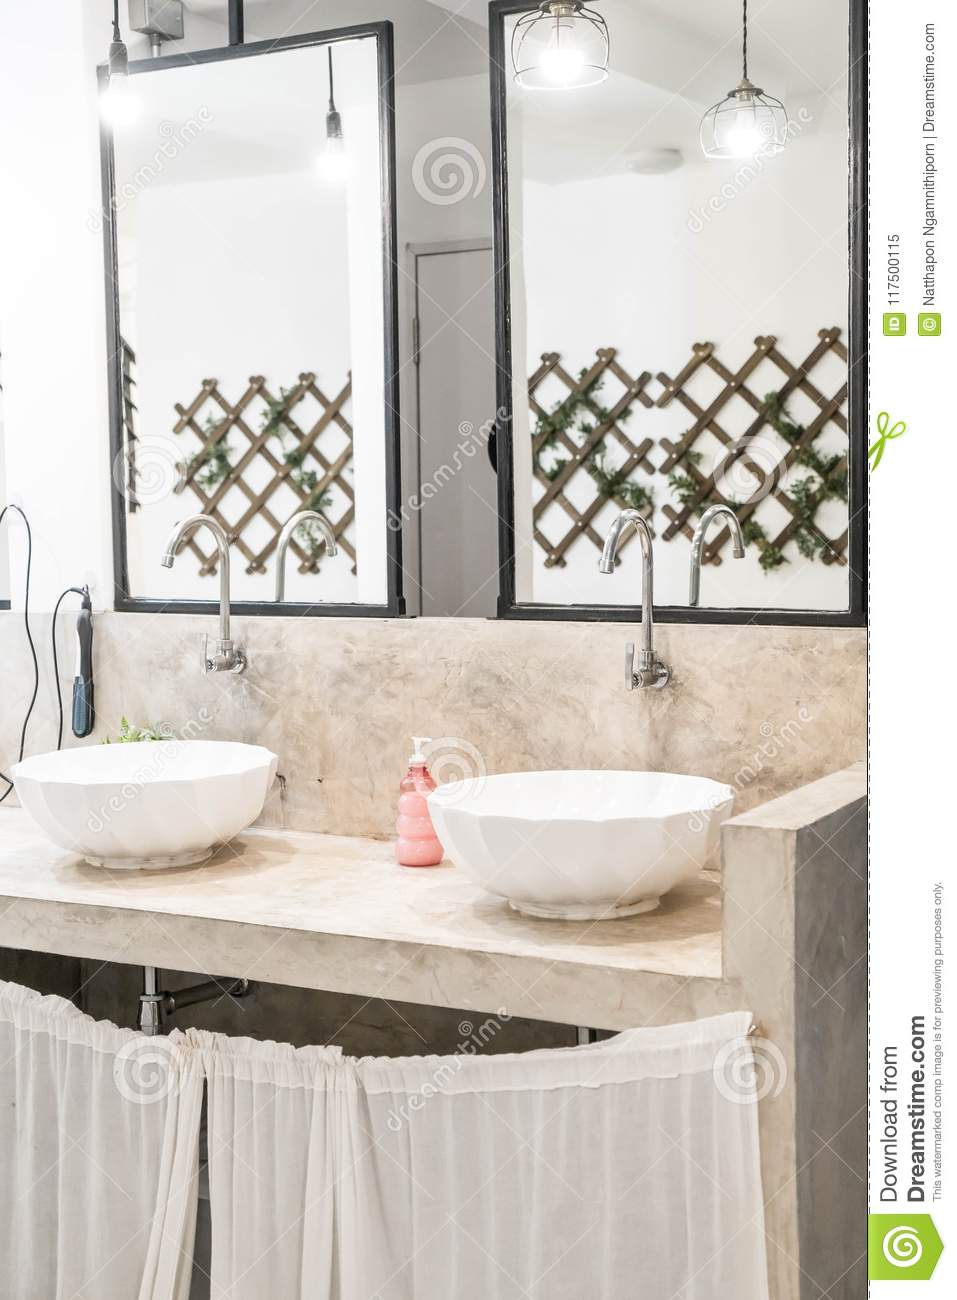 Modern Faucets For Bathroom Sinks Sink Basin Faucet In Bathroom Stock Image Image Of Modern